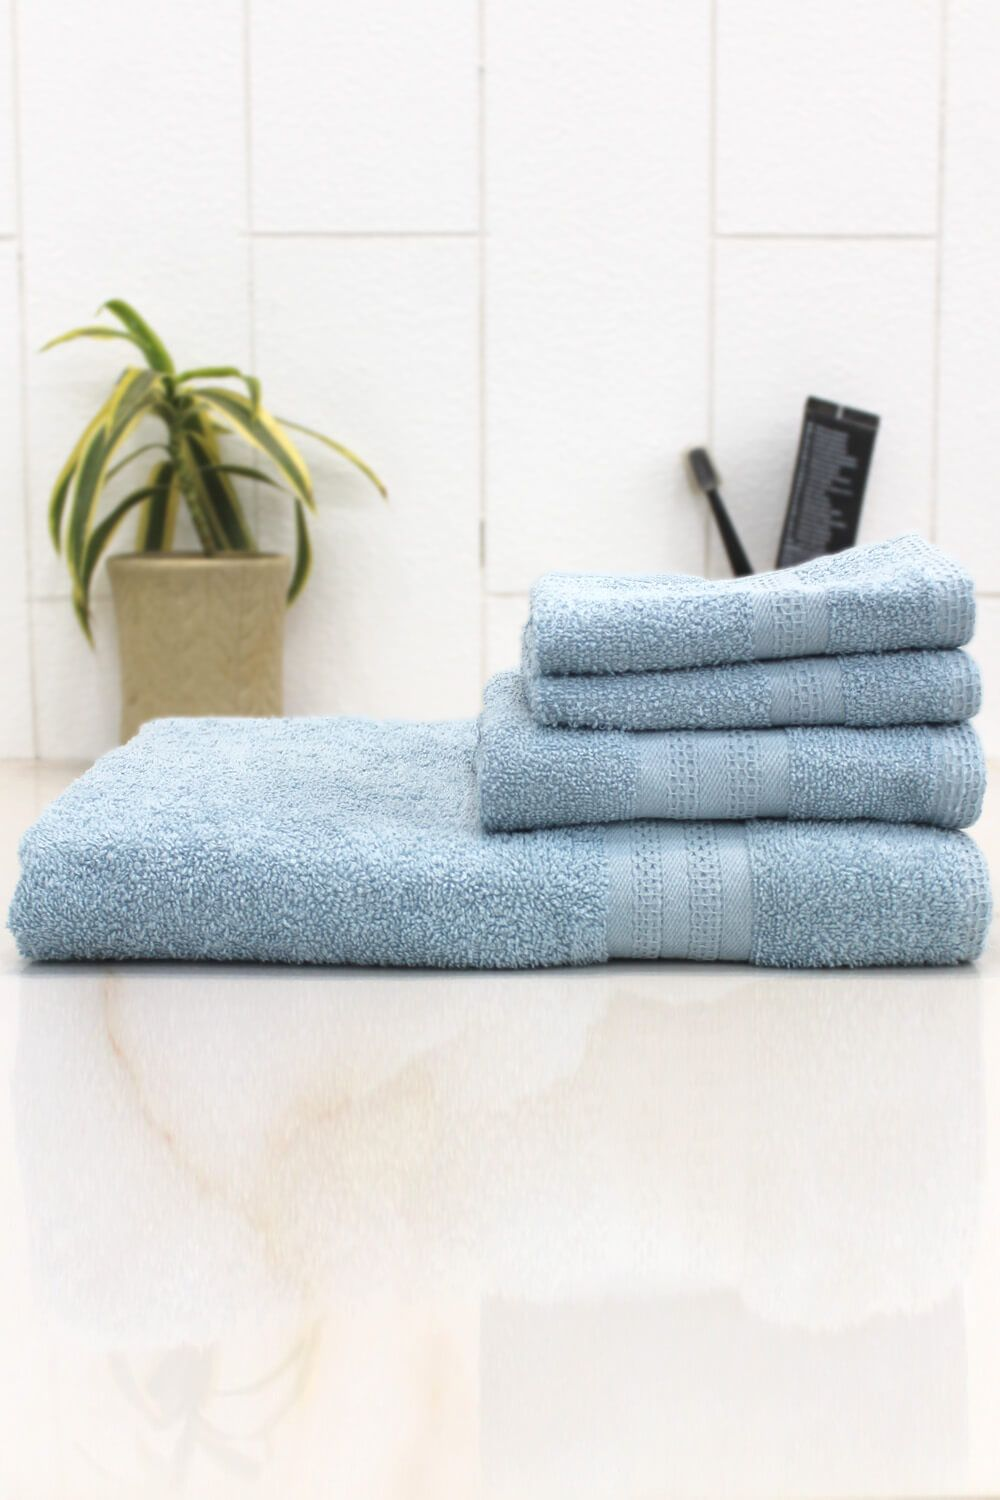 ANTIMICROBIAL-towels-the-goods-fabric